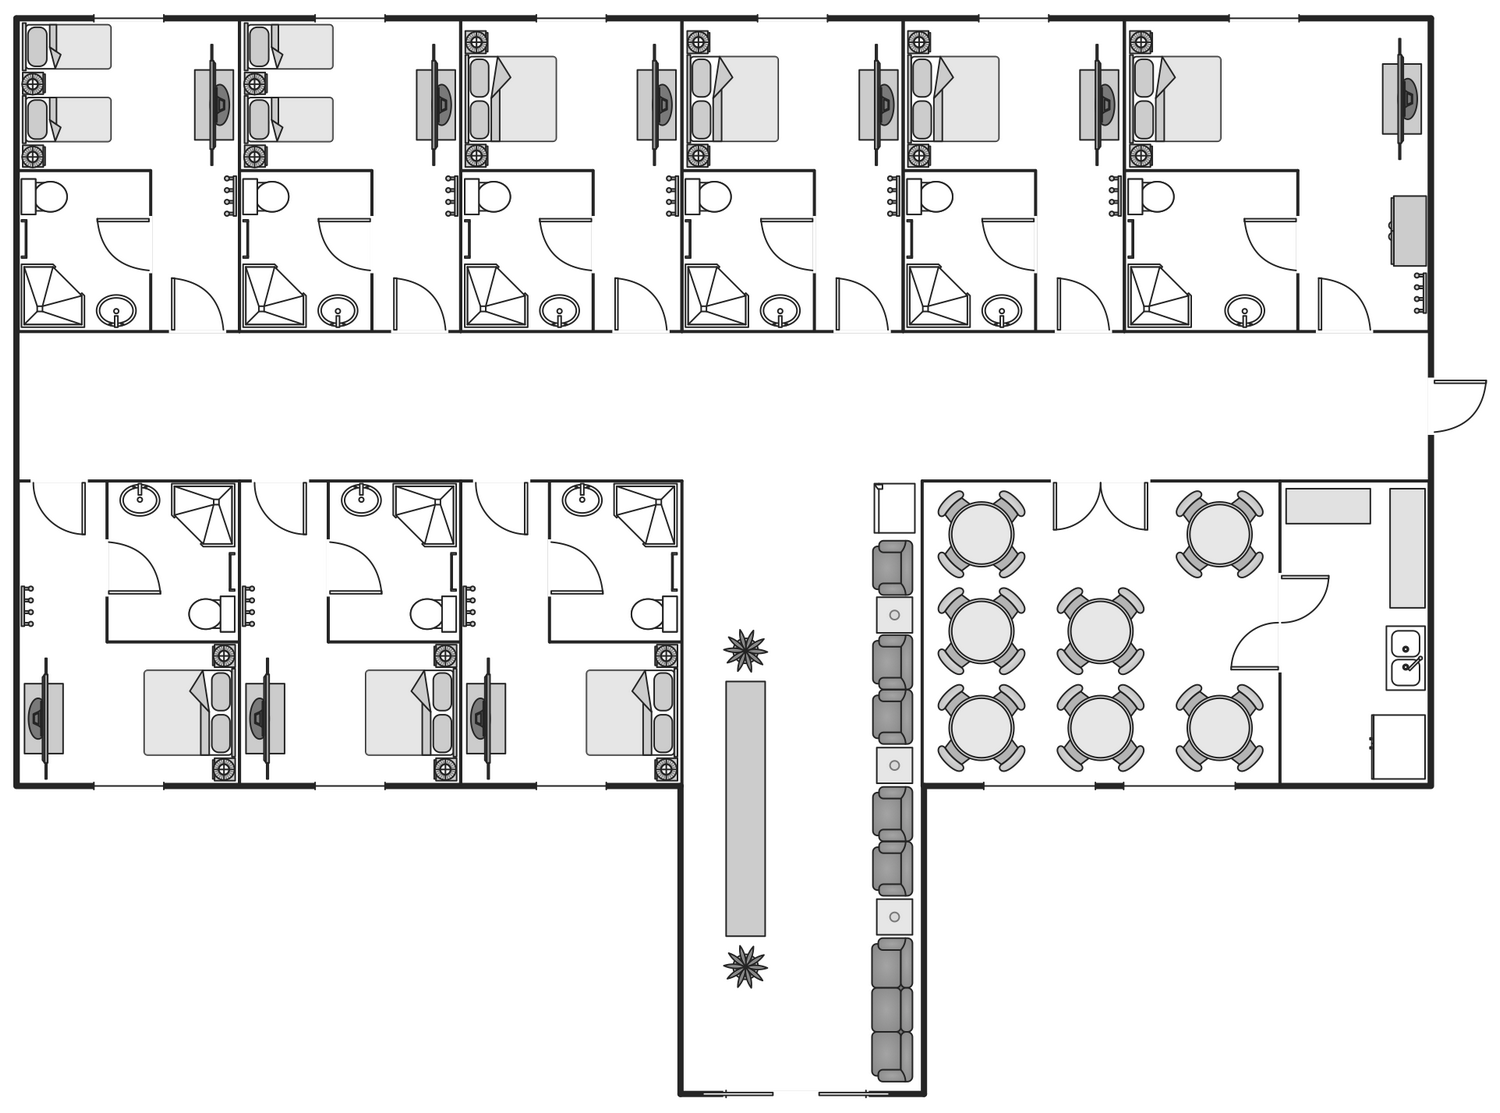 Basic floor plans solution conceptdraw